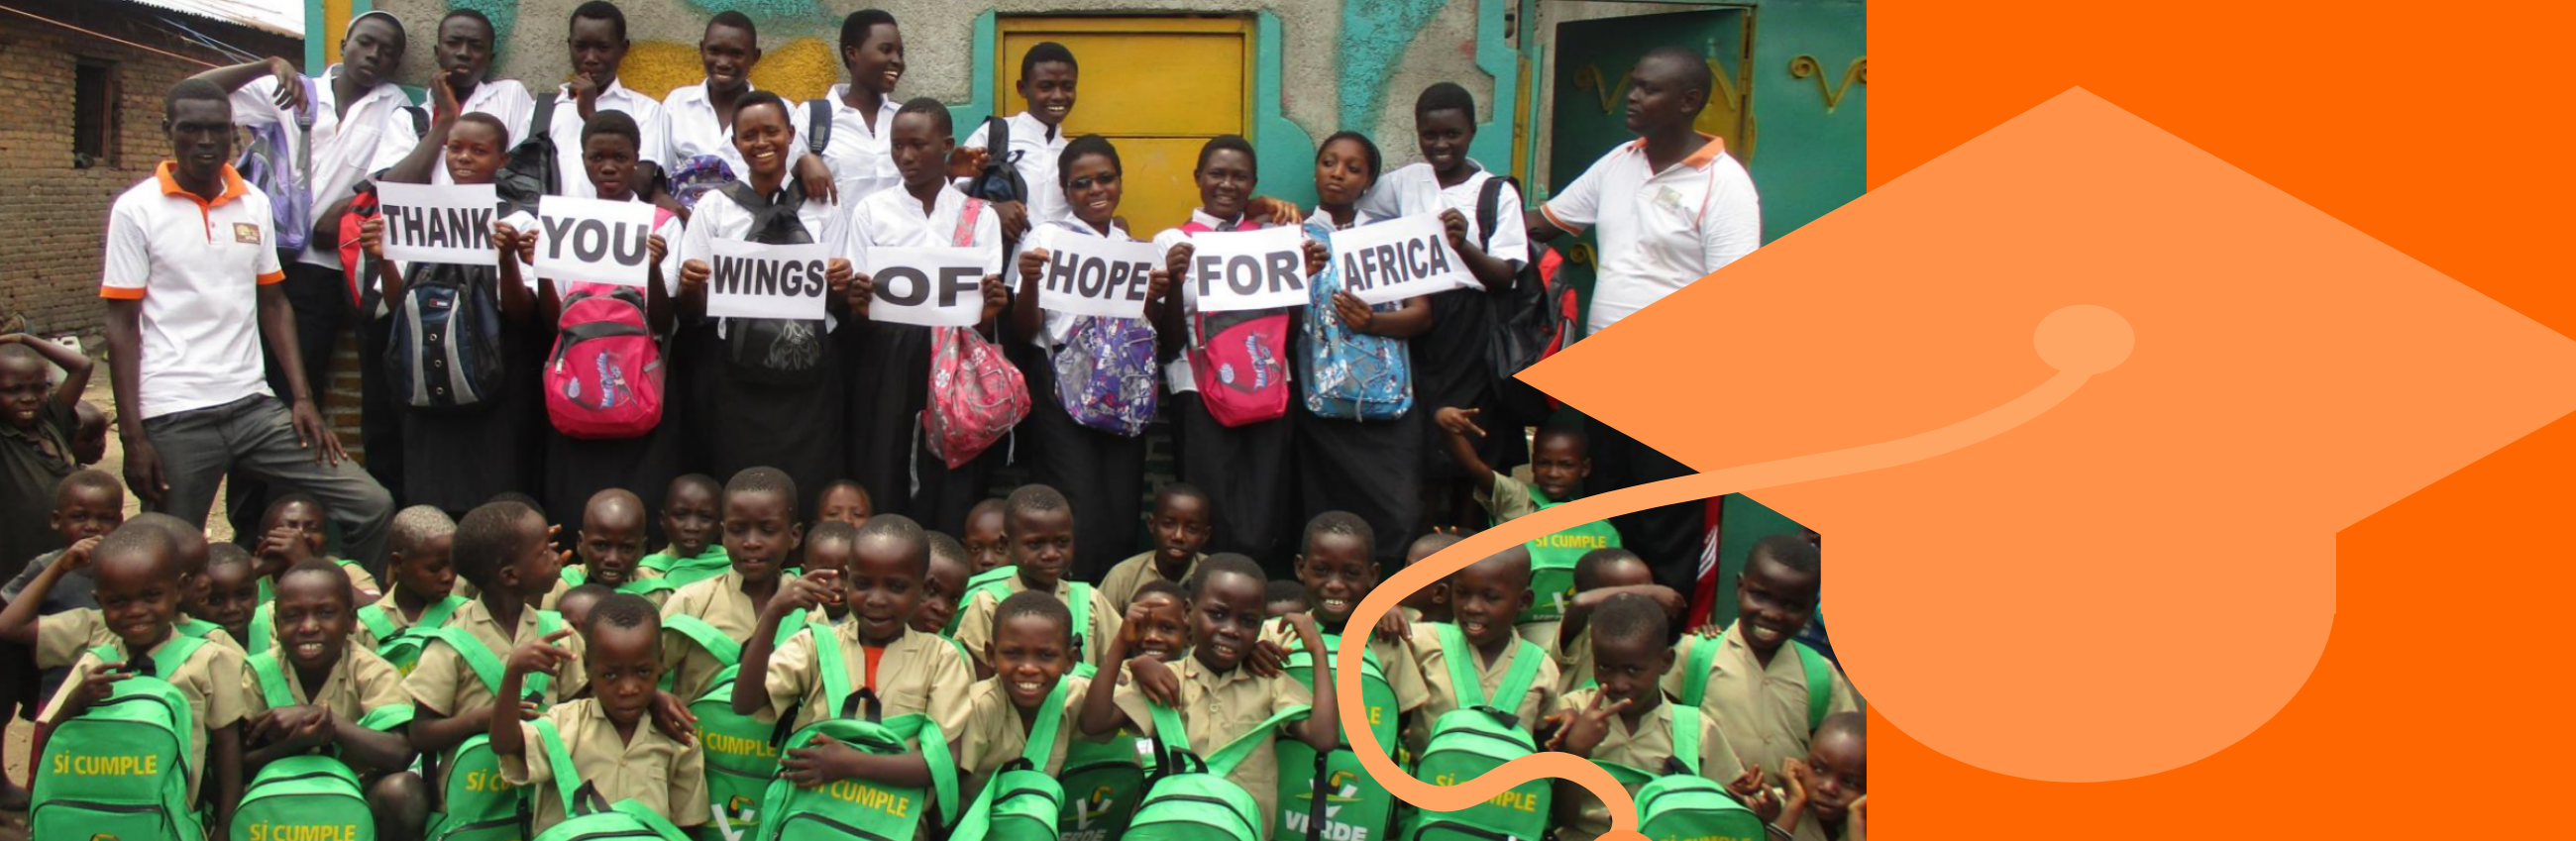 Wings of Hope for Africa firmly believes that education and sponsorship are important tools in breaking the cycle of poverty in Burundi.